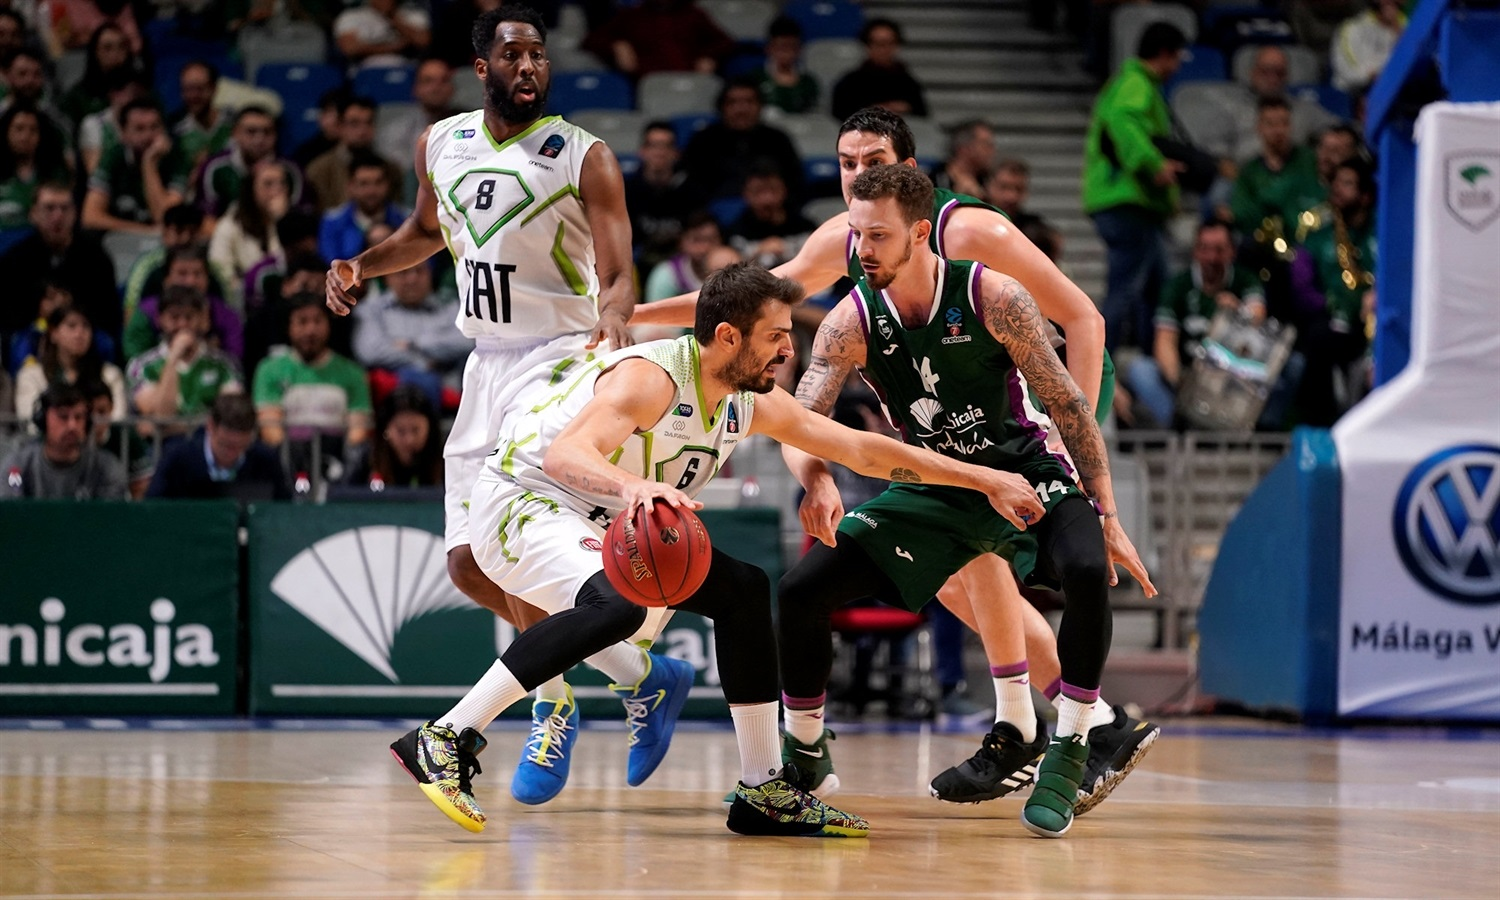 Baris Ermis - Tofas Bursa (photo Mariano Pozo - Unicaja) - EC19